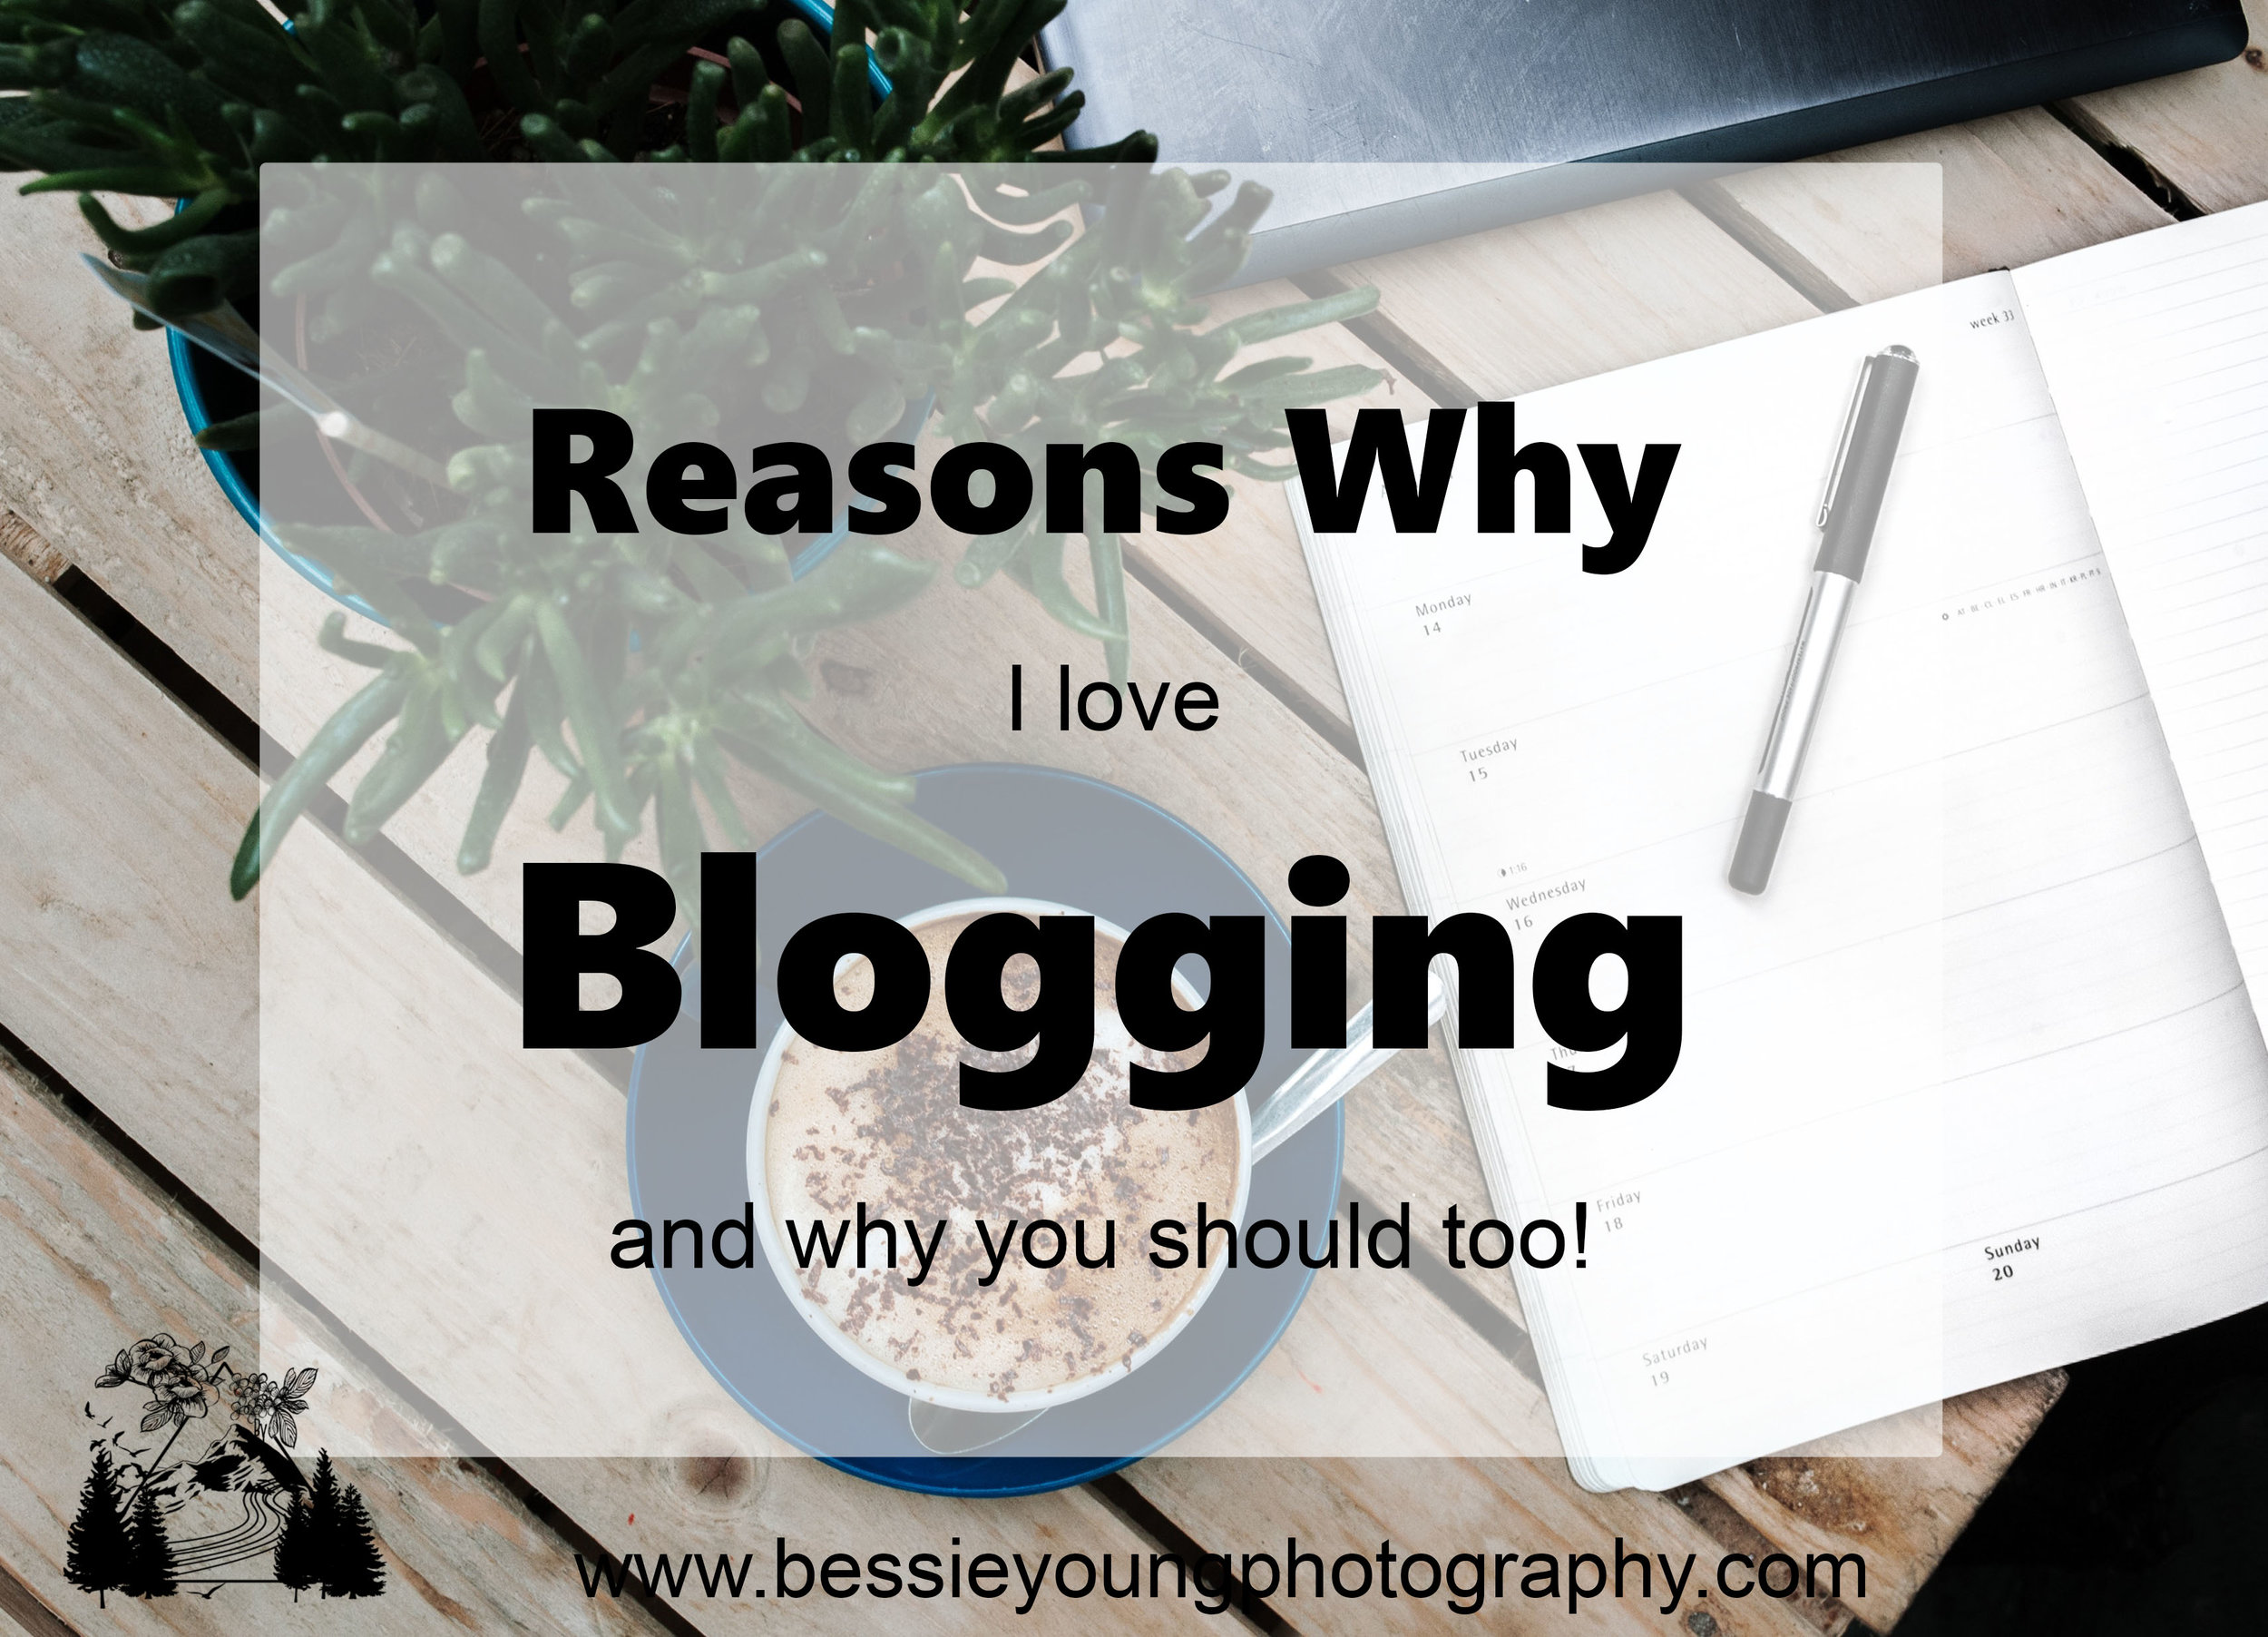 Reasons why I love blogging and you should too by Bessie Young Photography.jpg